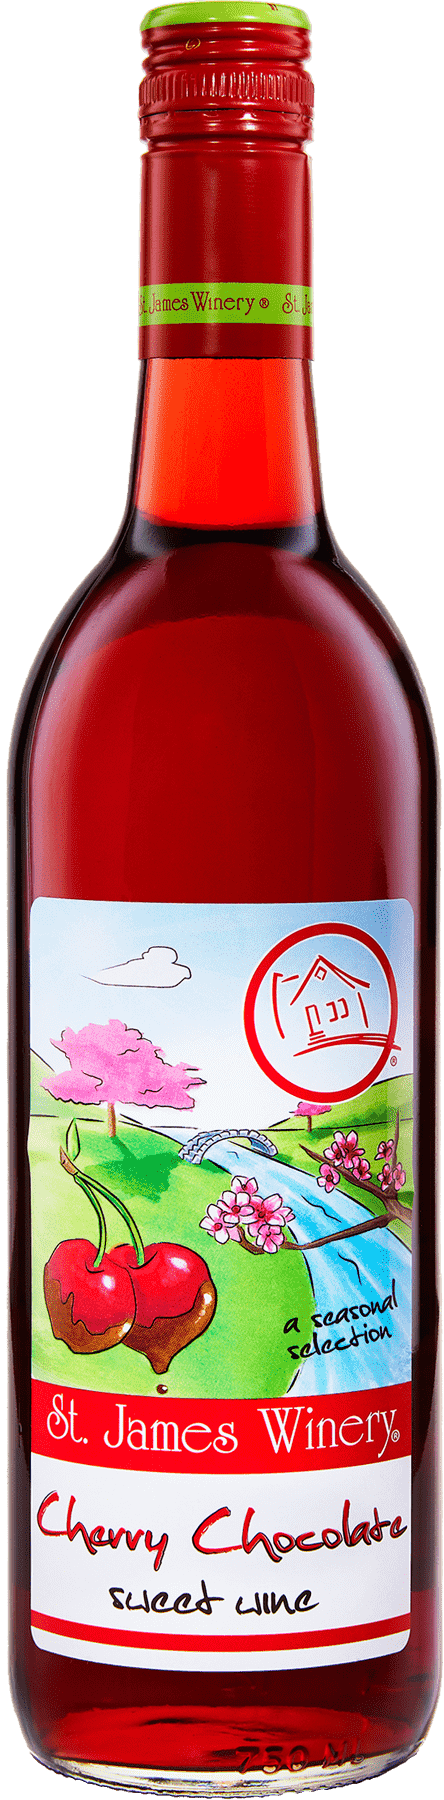 Cherry Chocolate Sweet Wine - St. James Winery Missouri